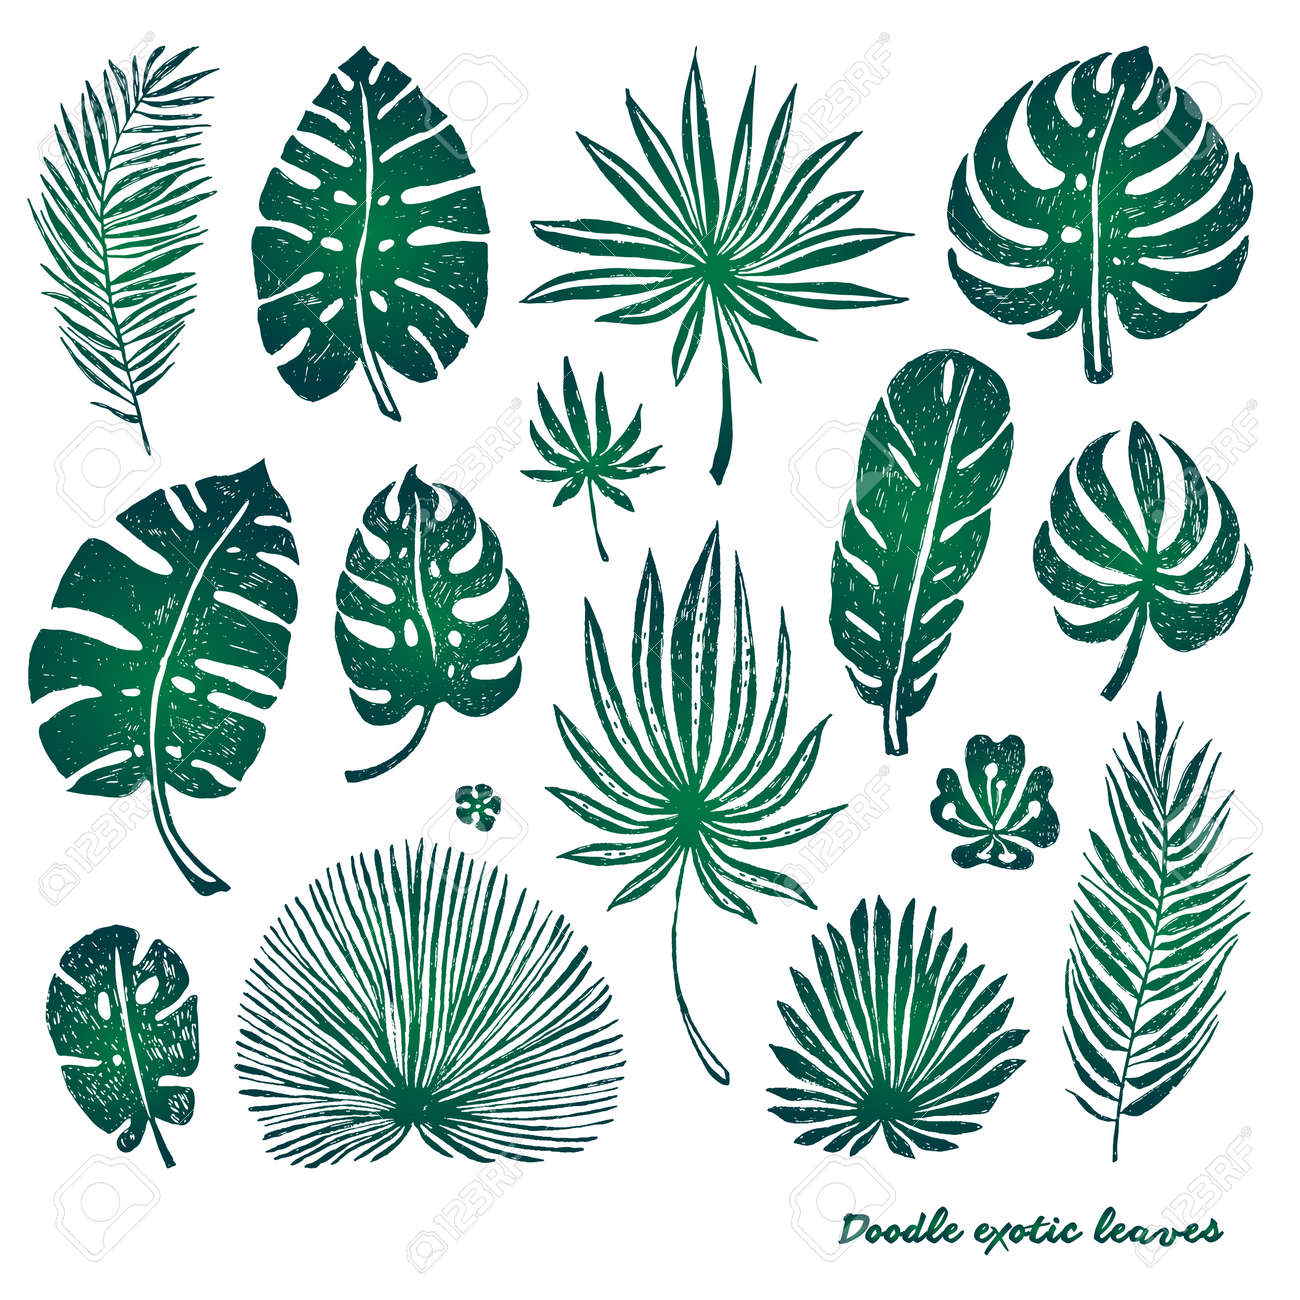 Set Of Green Doodle Exotic Palm Leaves And Plants On A White Royalty Free Cliparts Vectors And Stock Illustration Image 80501205